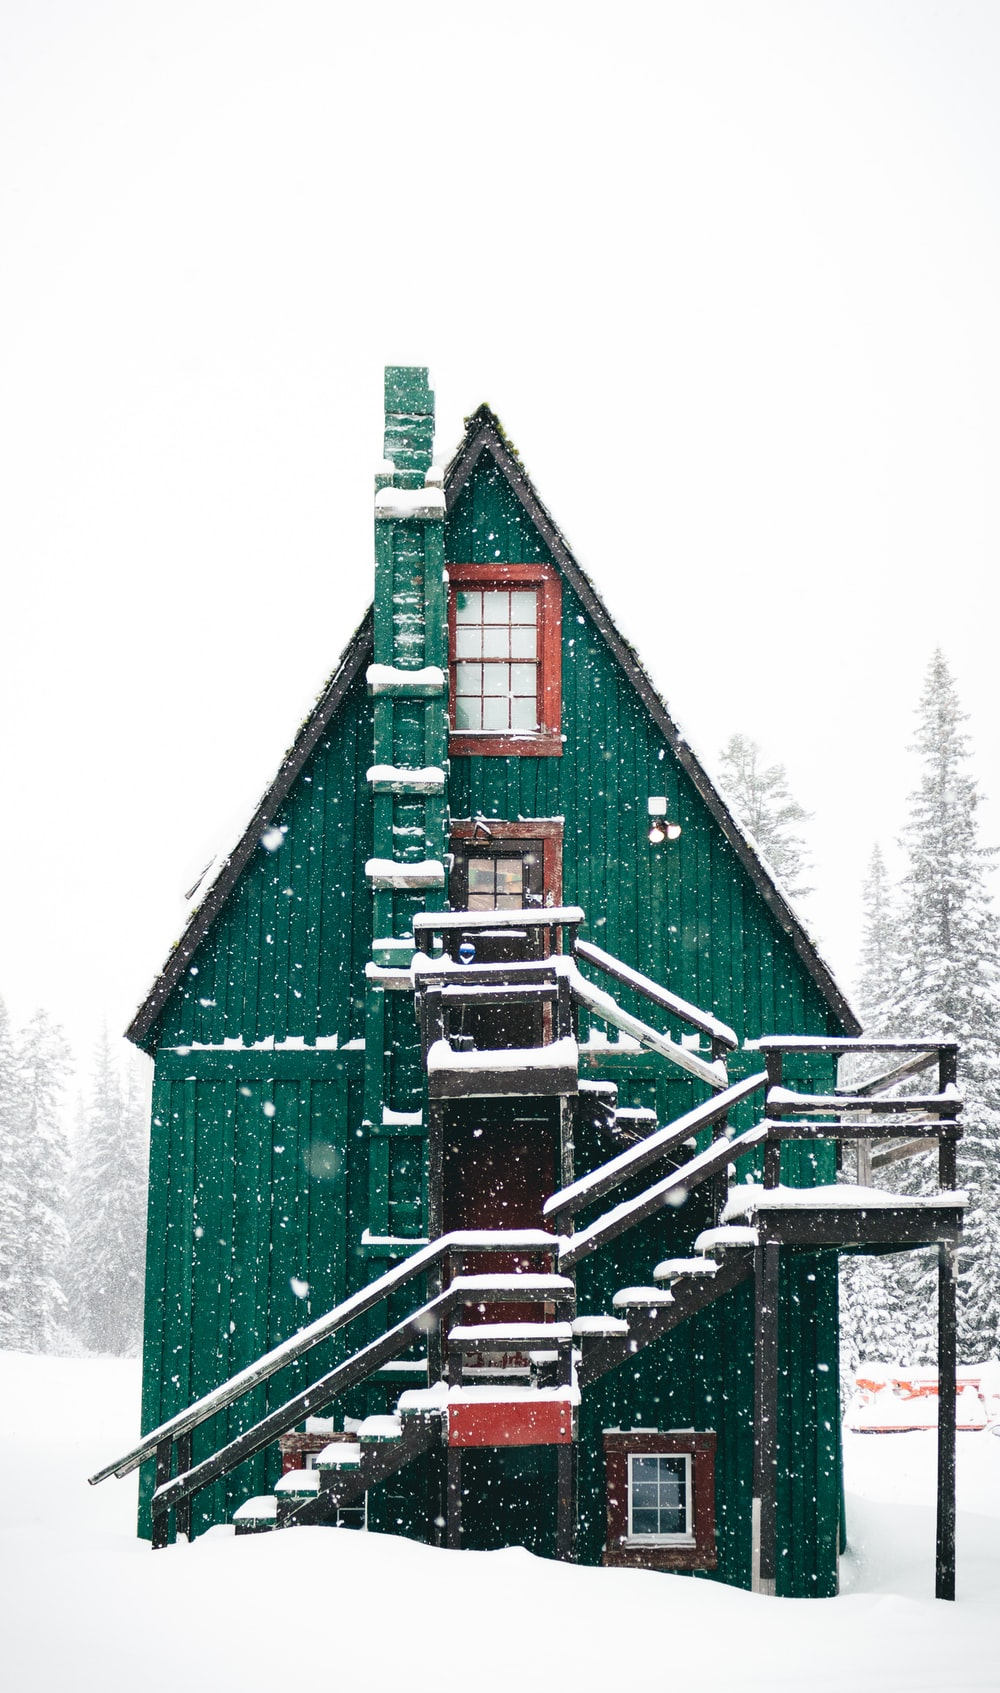 time-lapse photography of snow falling over green wooden house